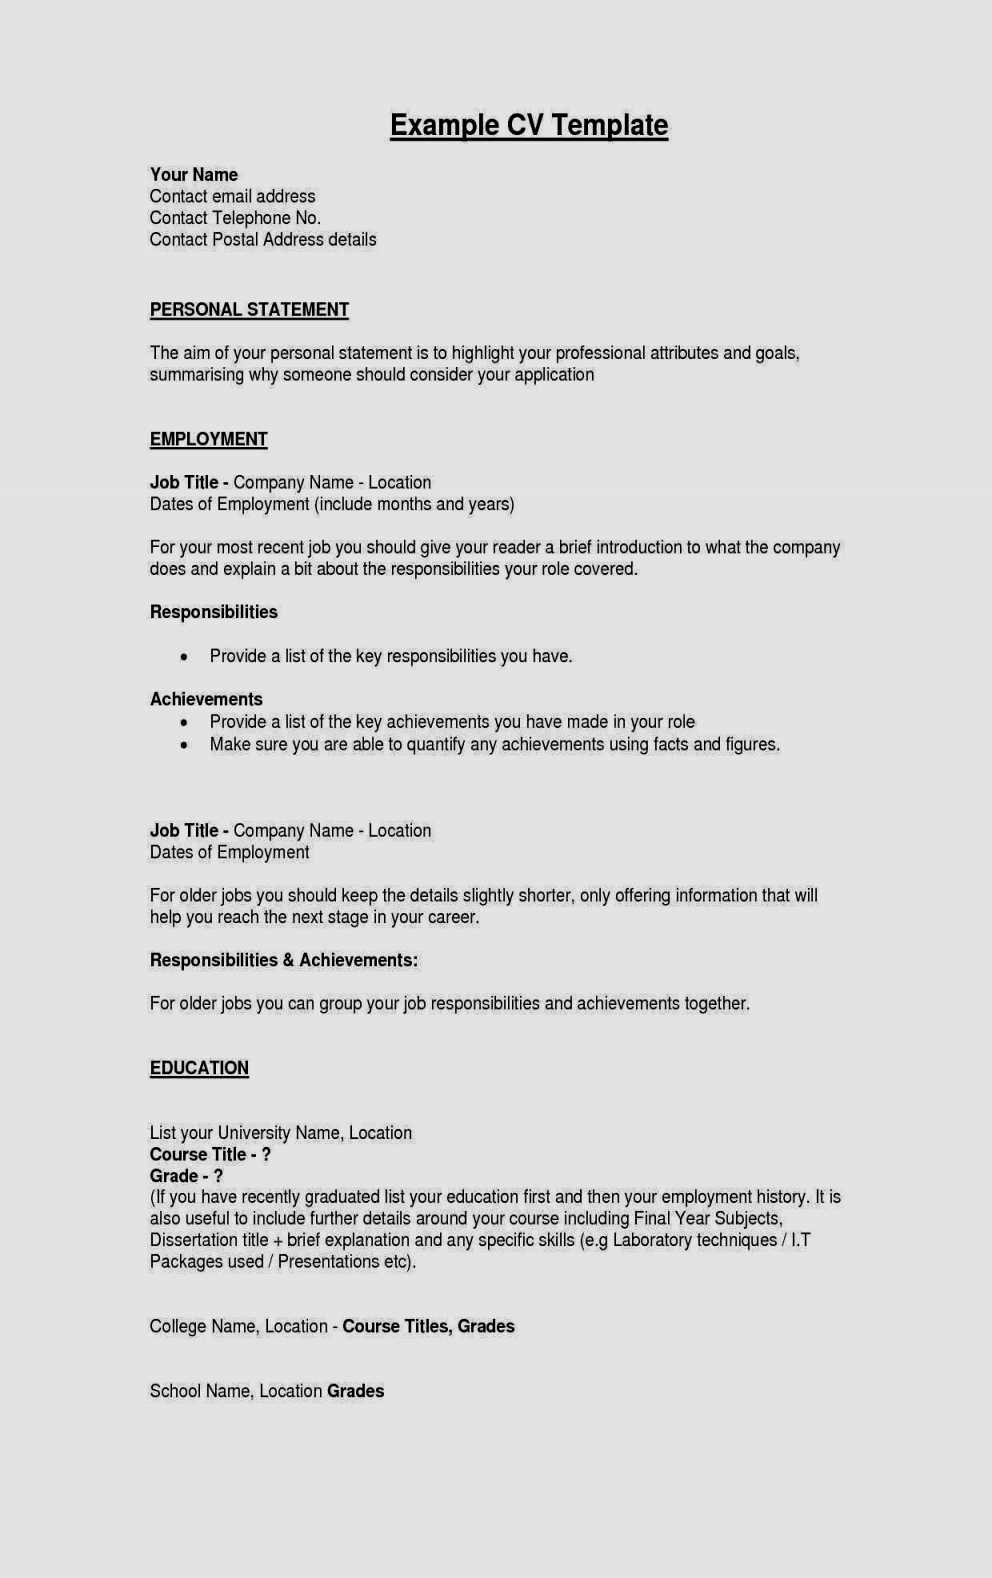 Sorority Recruitment Resume Template - How to Make Cover Letter Journalism Example Free Resume Templates